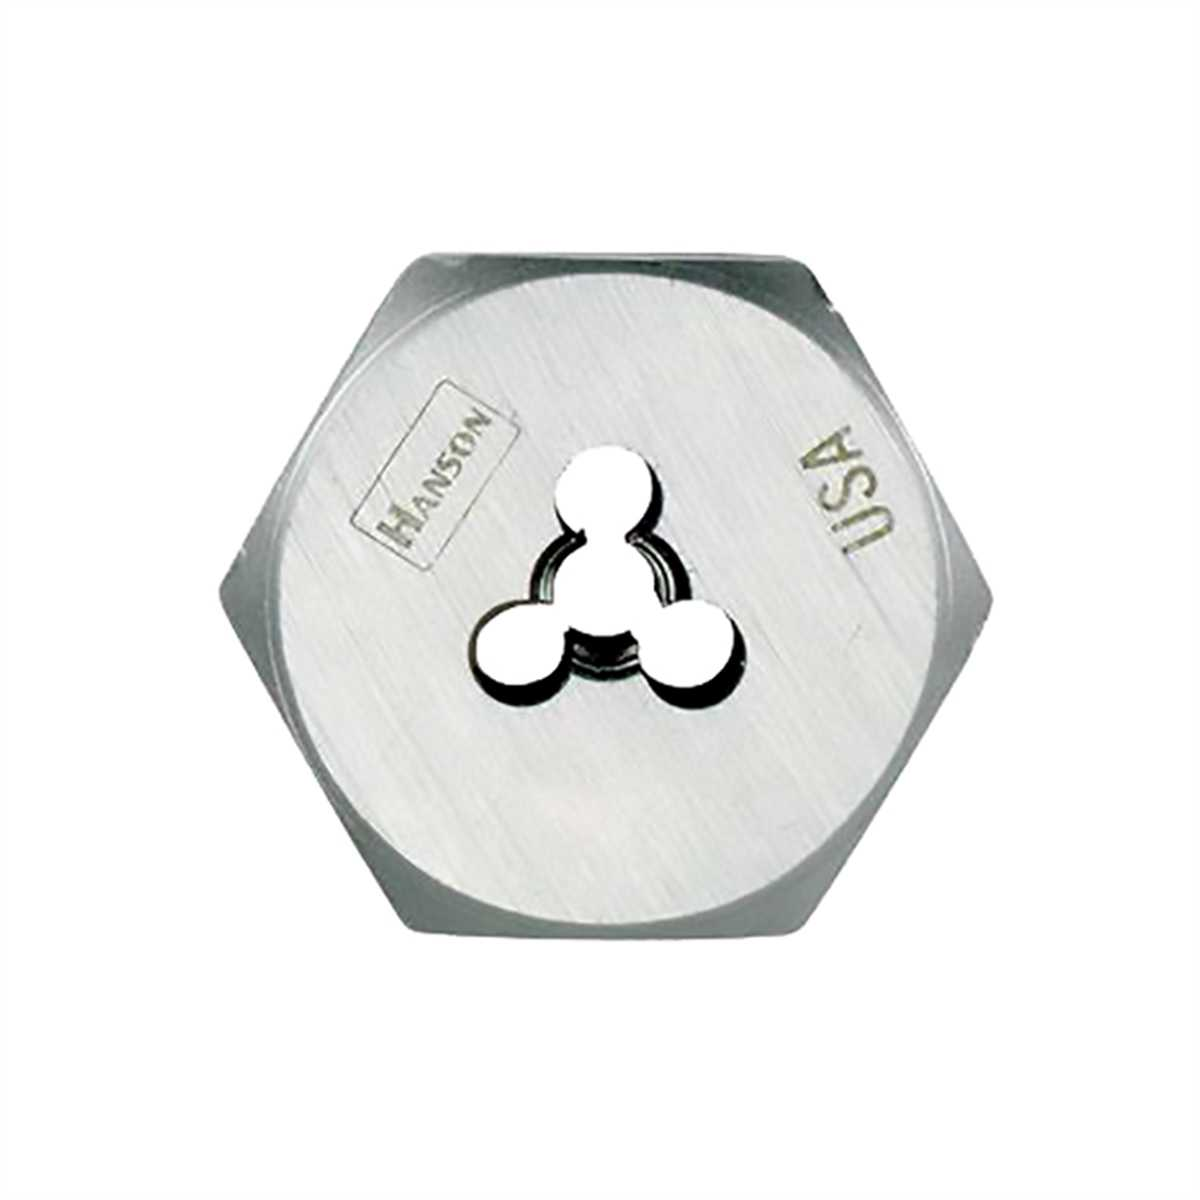 HCS Hex 1-7/16in. Across Flat Die 9/16in.-12 NC